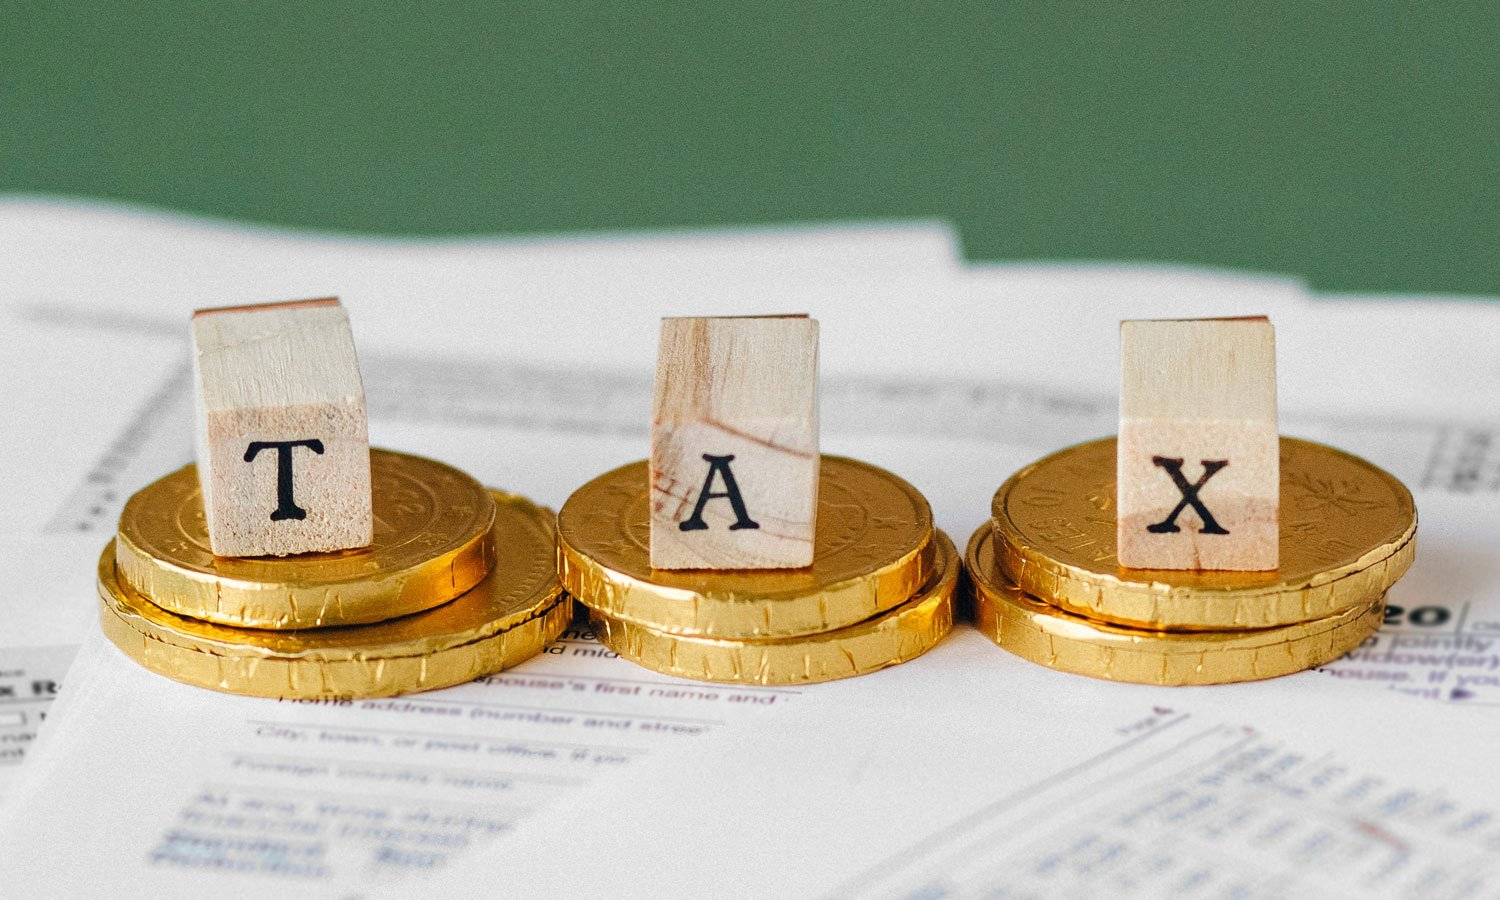 Tax spelled out with wooden blocks